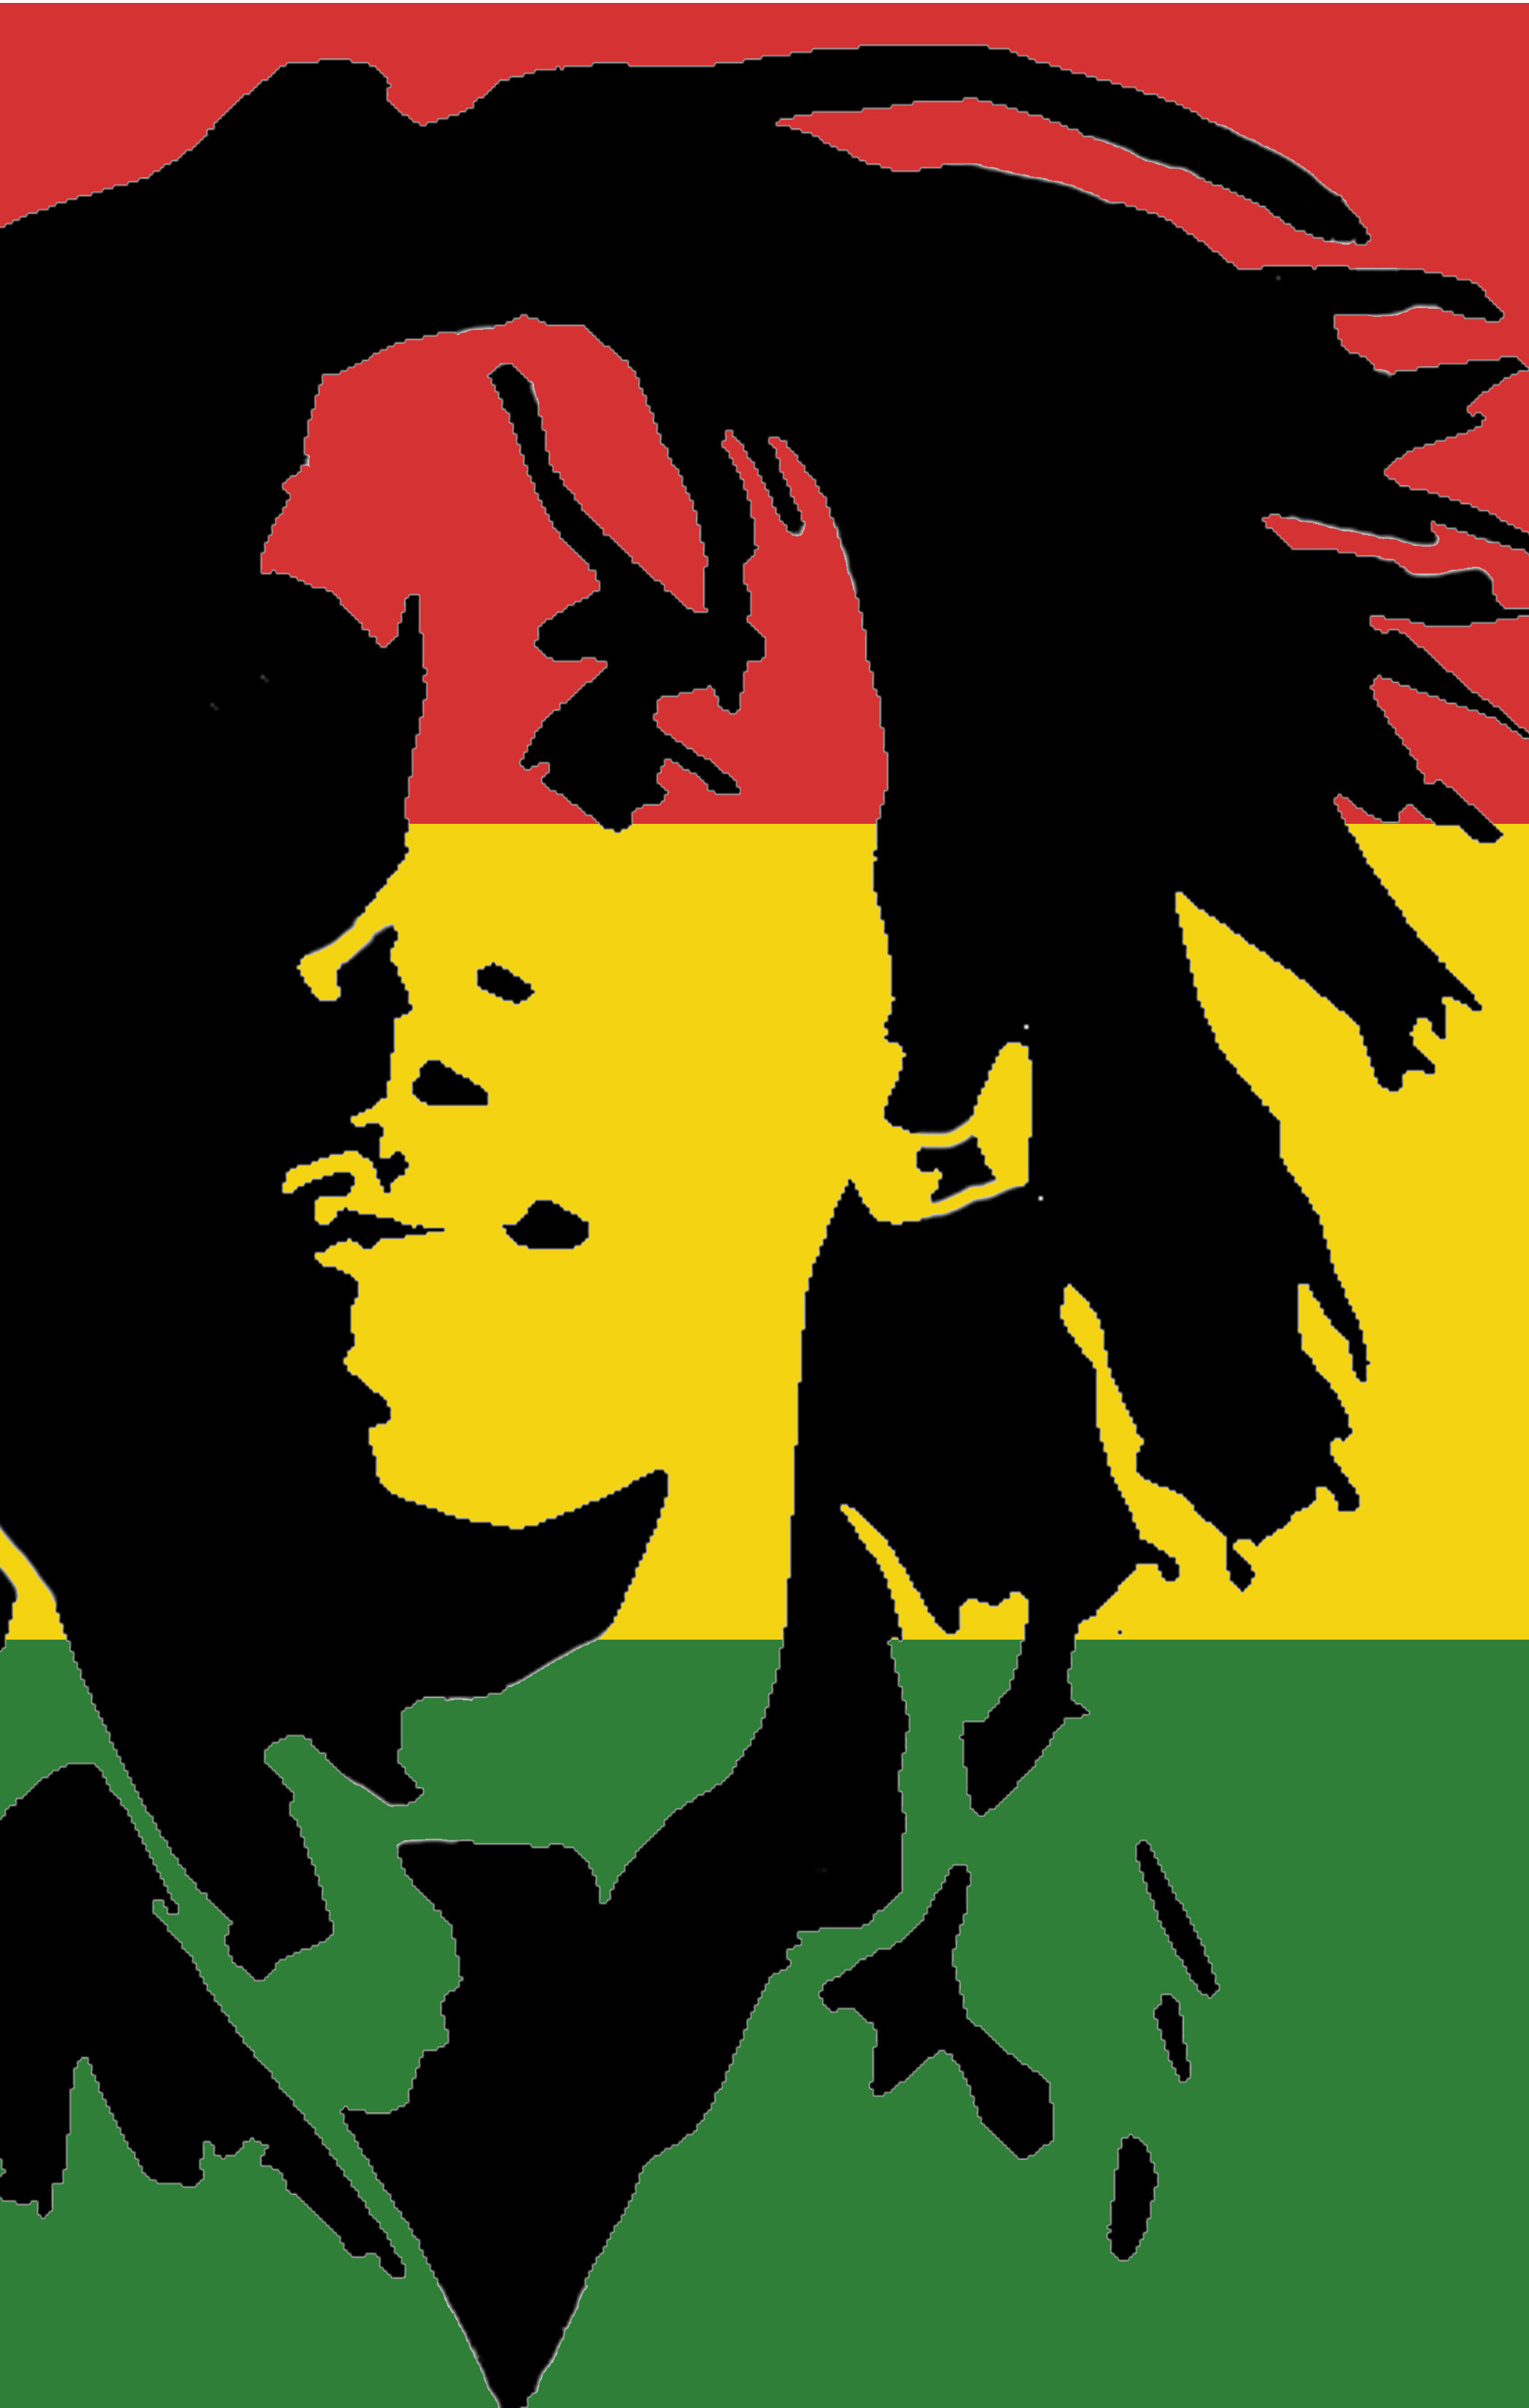 Wallpaper iphone rasta - Rasta Wallpaper Iphone Wallpapers Trending Space